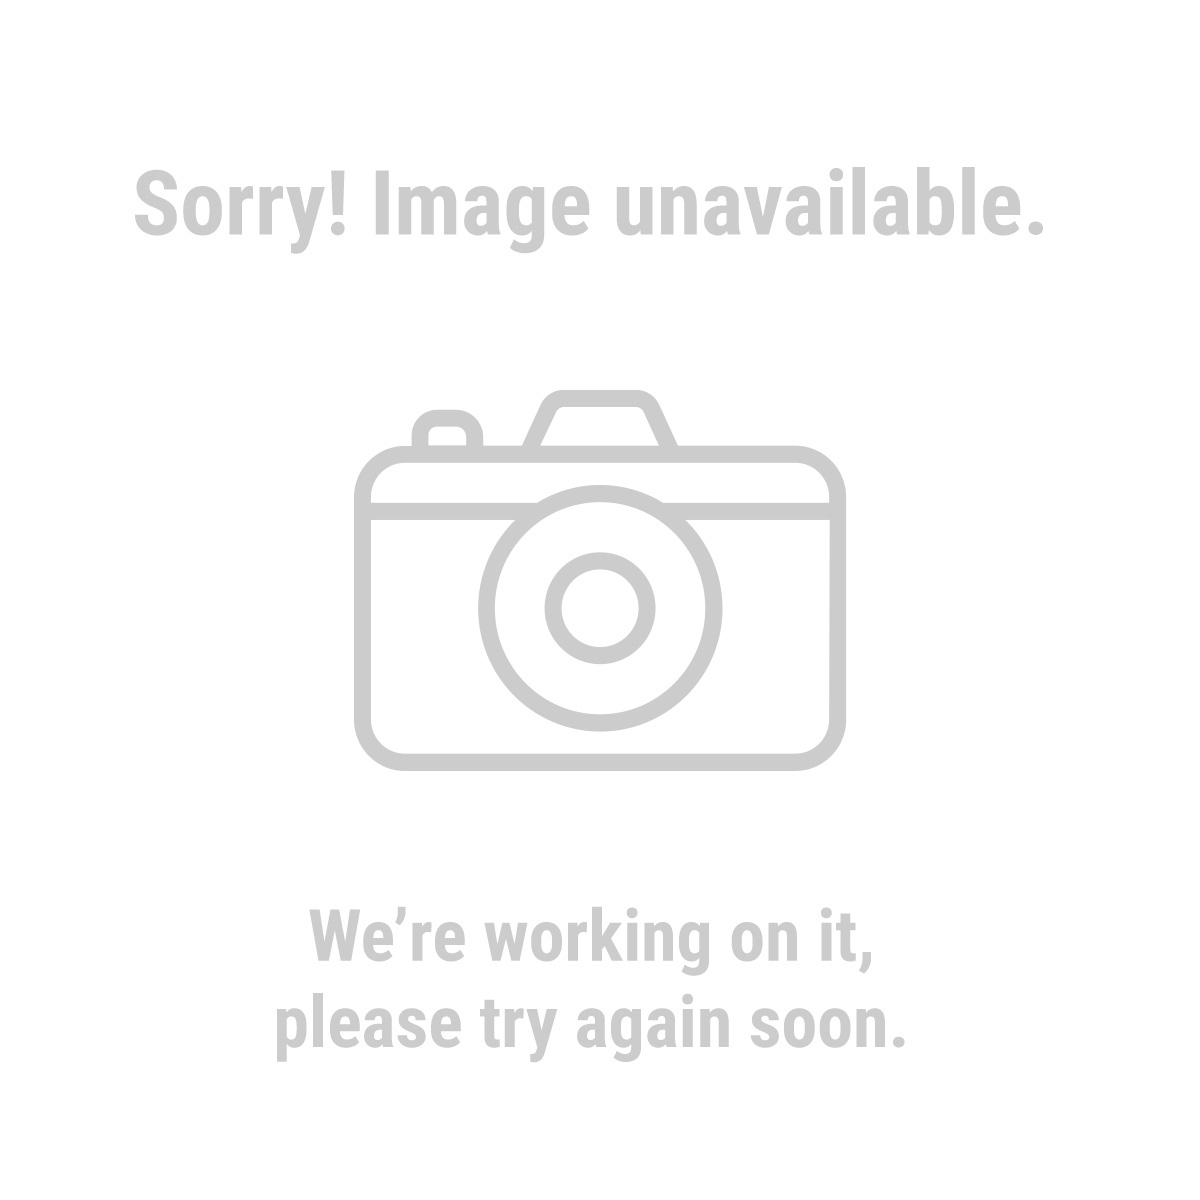 Gordon 96551 33 Piece Deluxe Hobby Knife Set